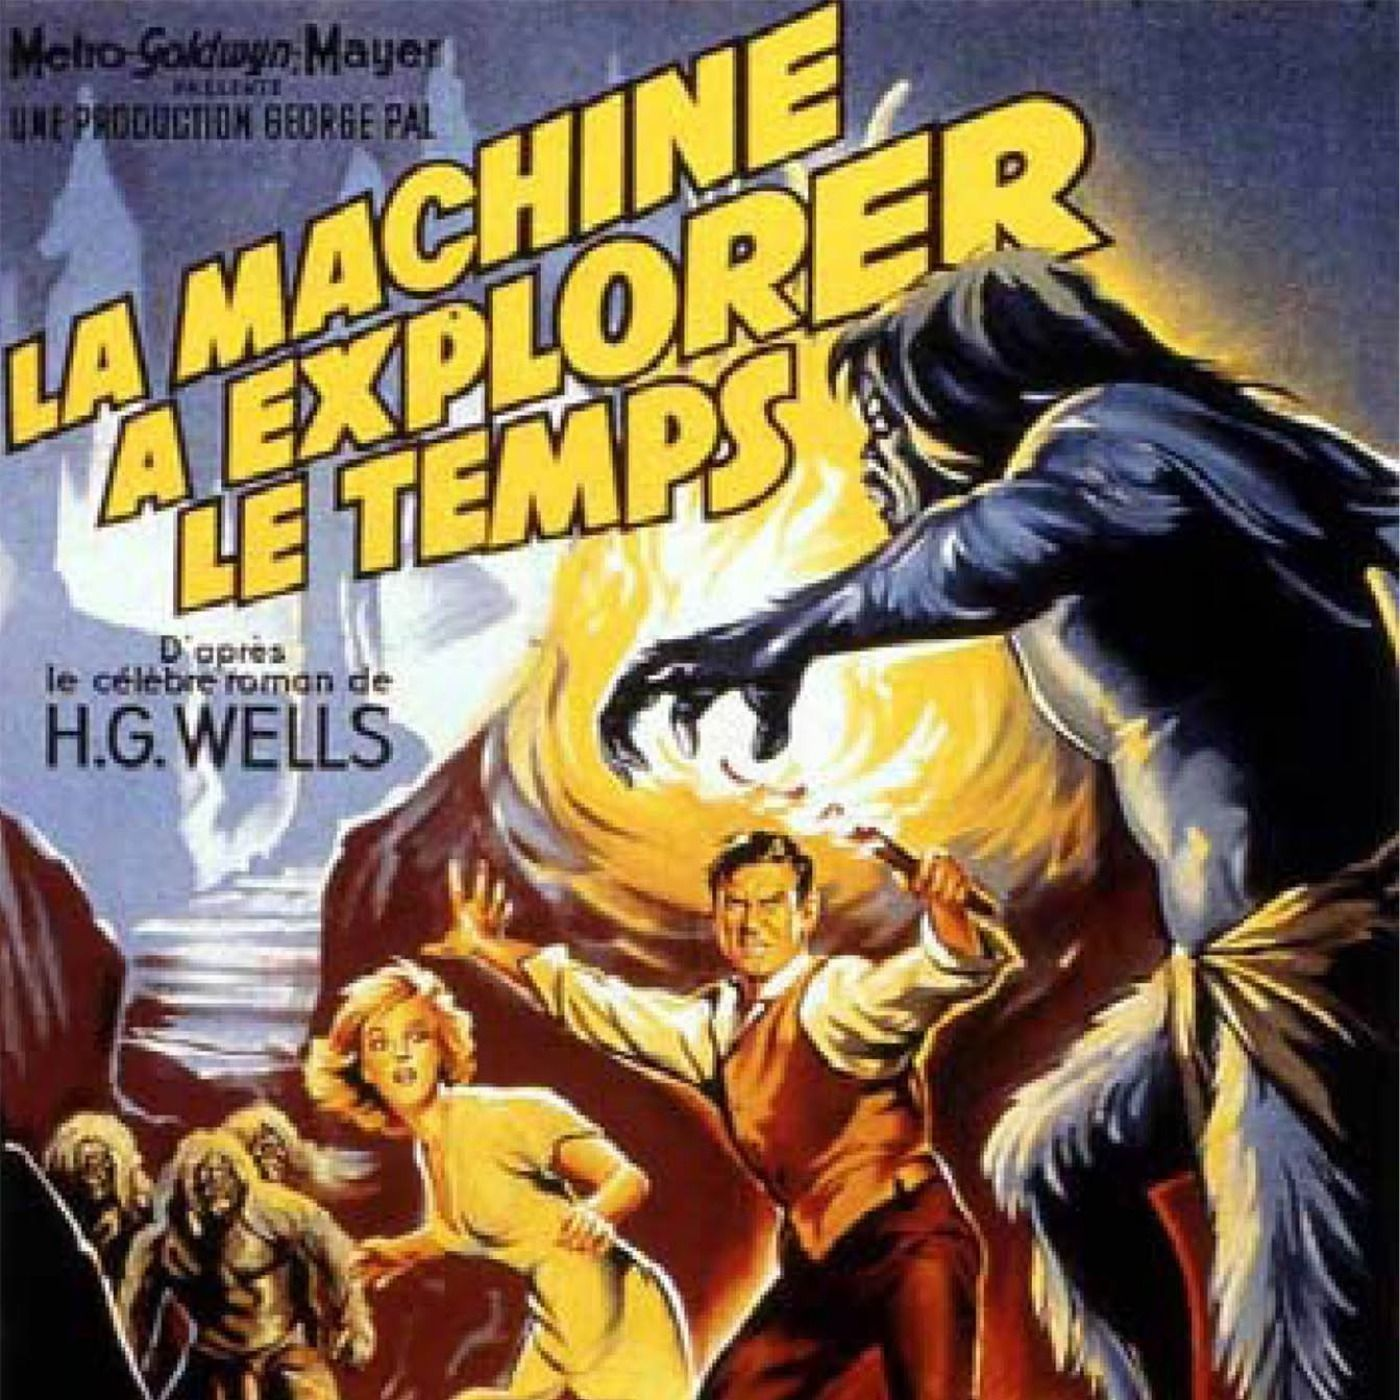 PODCAST CINEMA | Un film à voir absolument : LA MACHINE A EXPLORER LE TEMPS / The Time Machine | CinéMaRadio